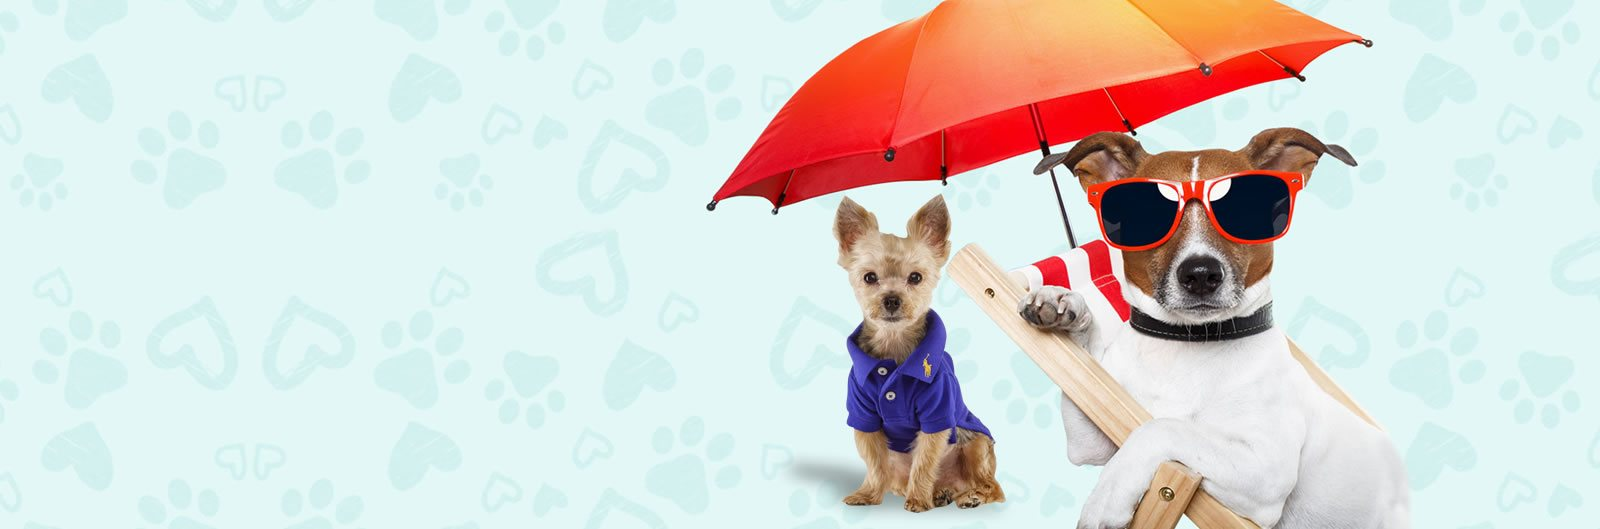 Sassy Dog Fashions - Best online store for pet clothing and accessories